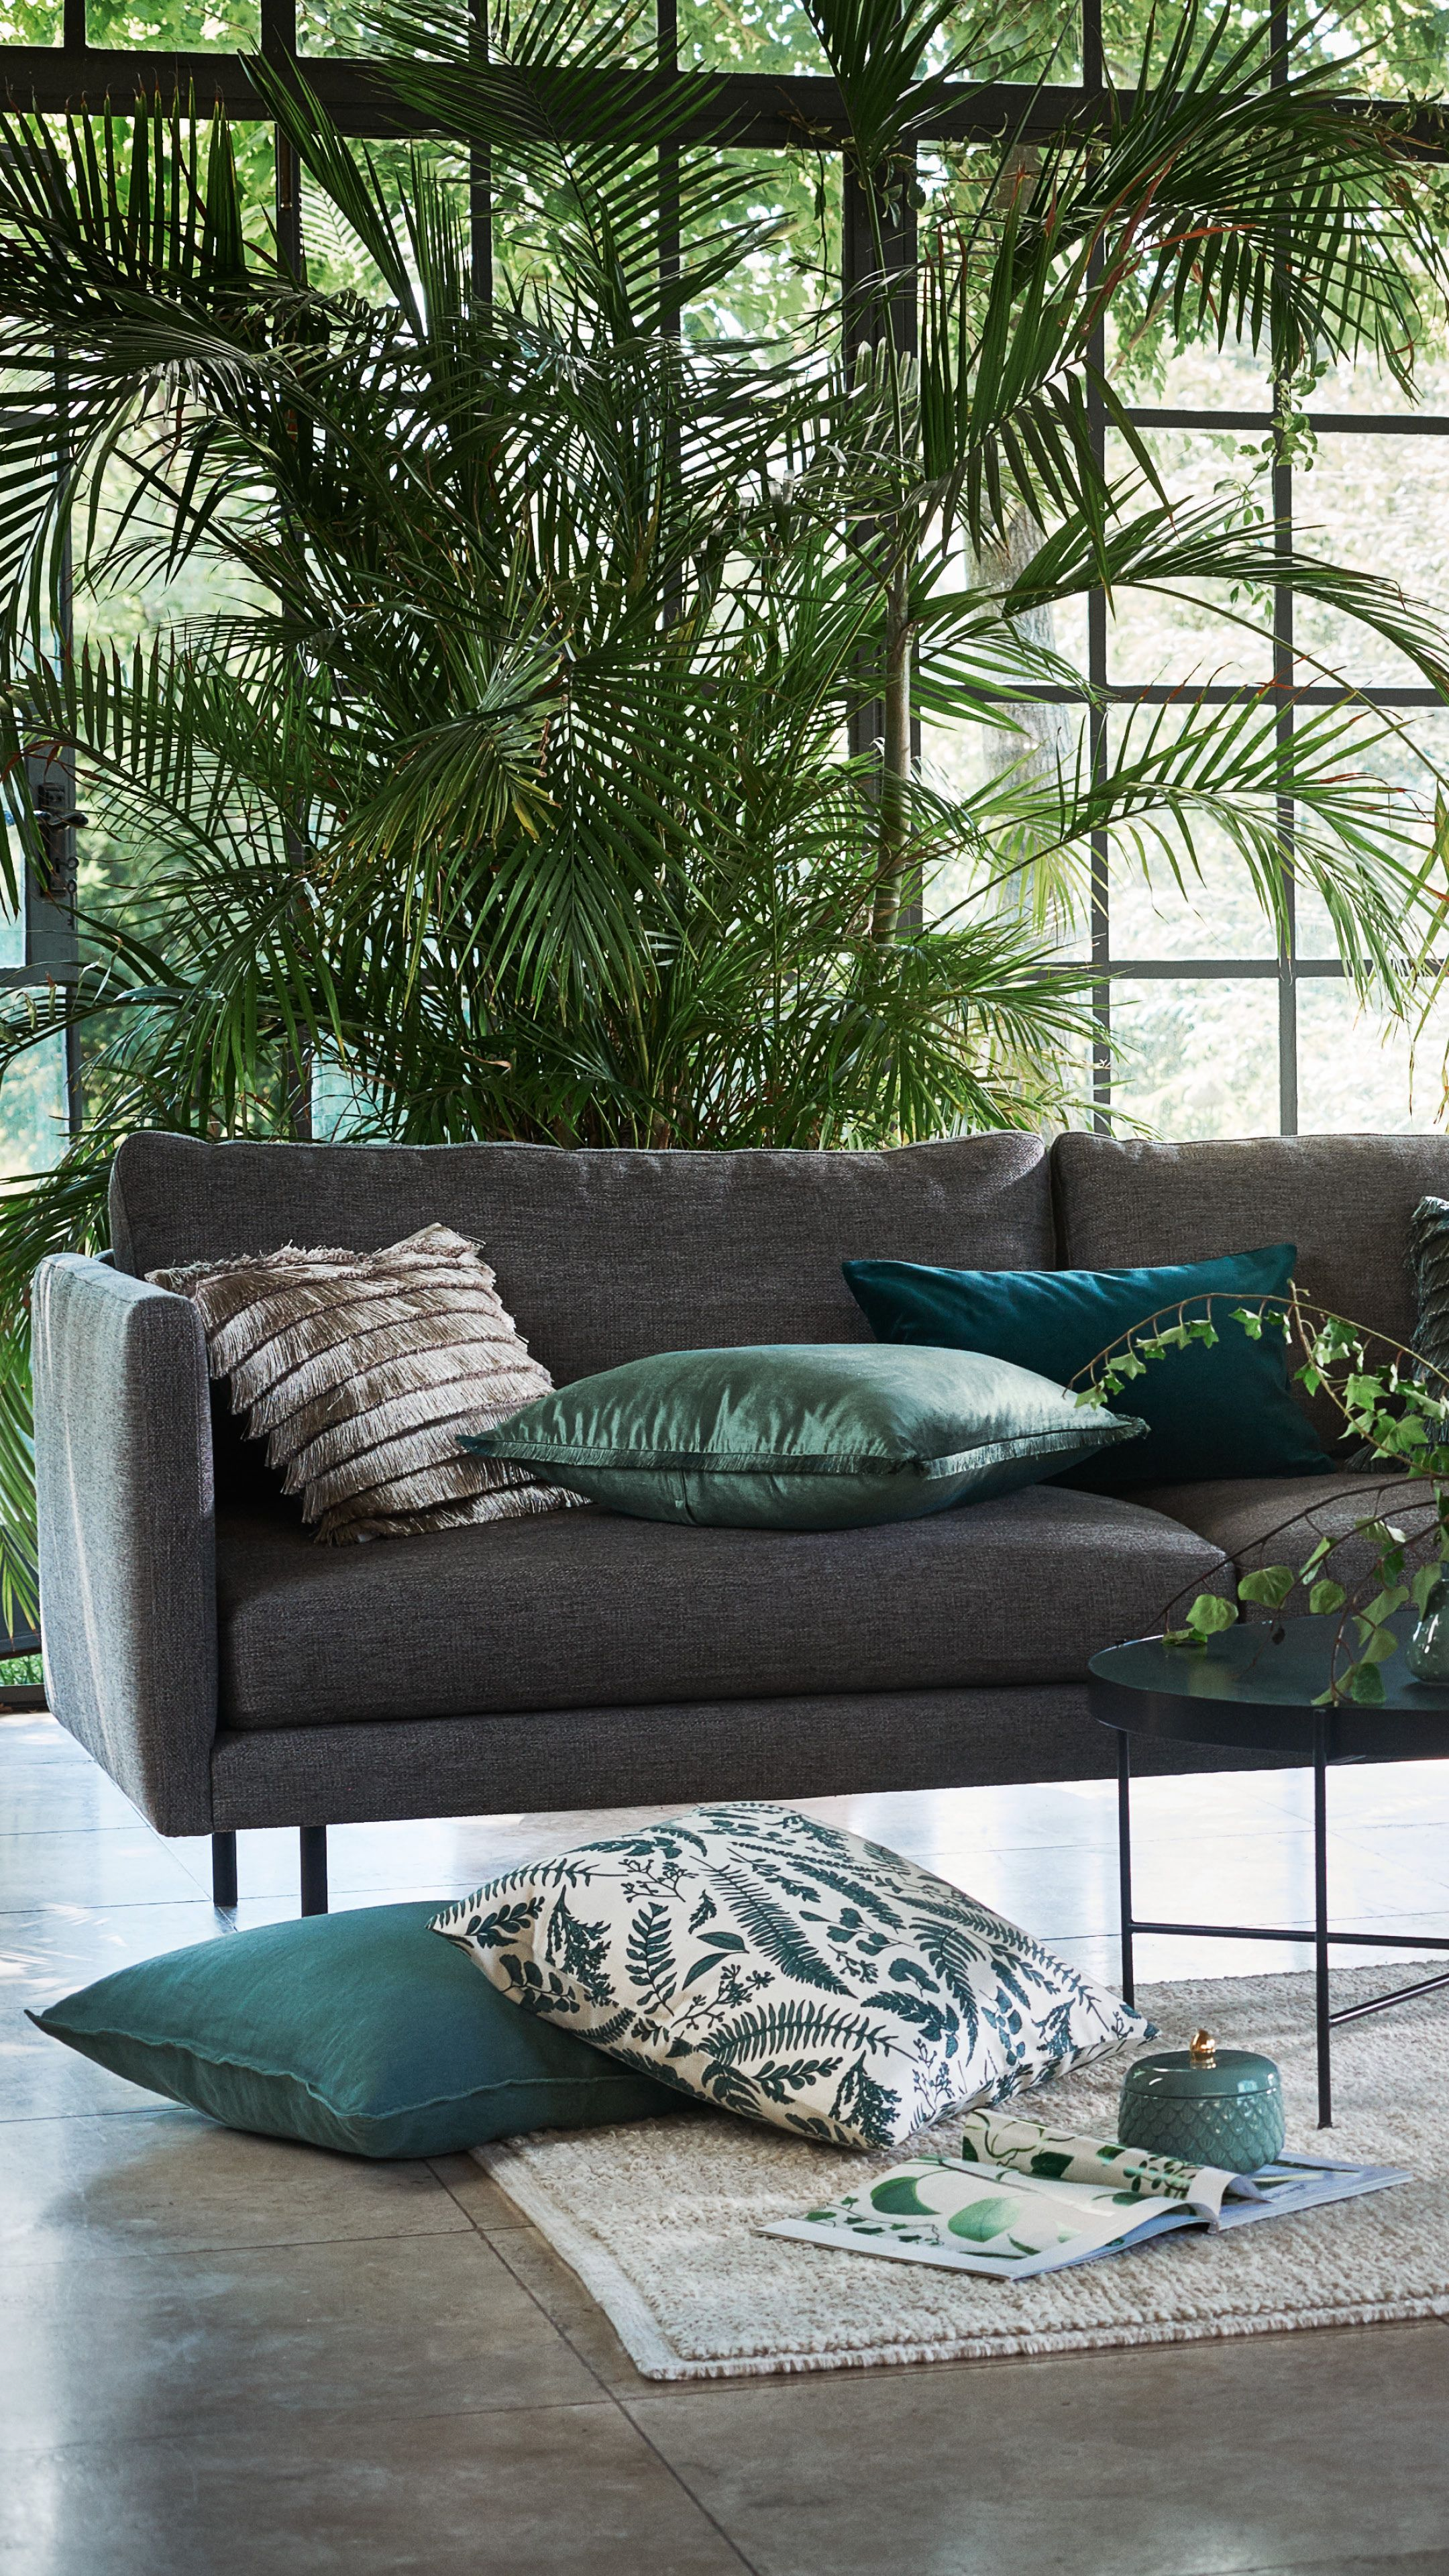 Dschungel badezimmer dekor liven up any room with new home accessories and green tones  hum